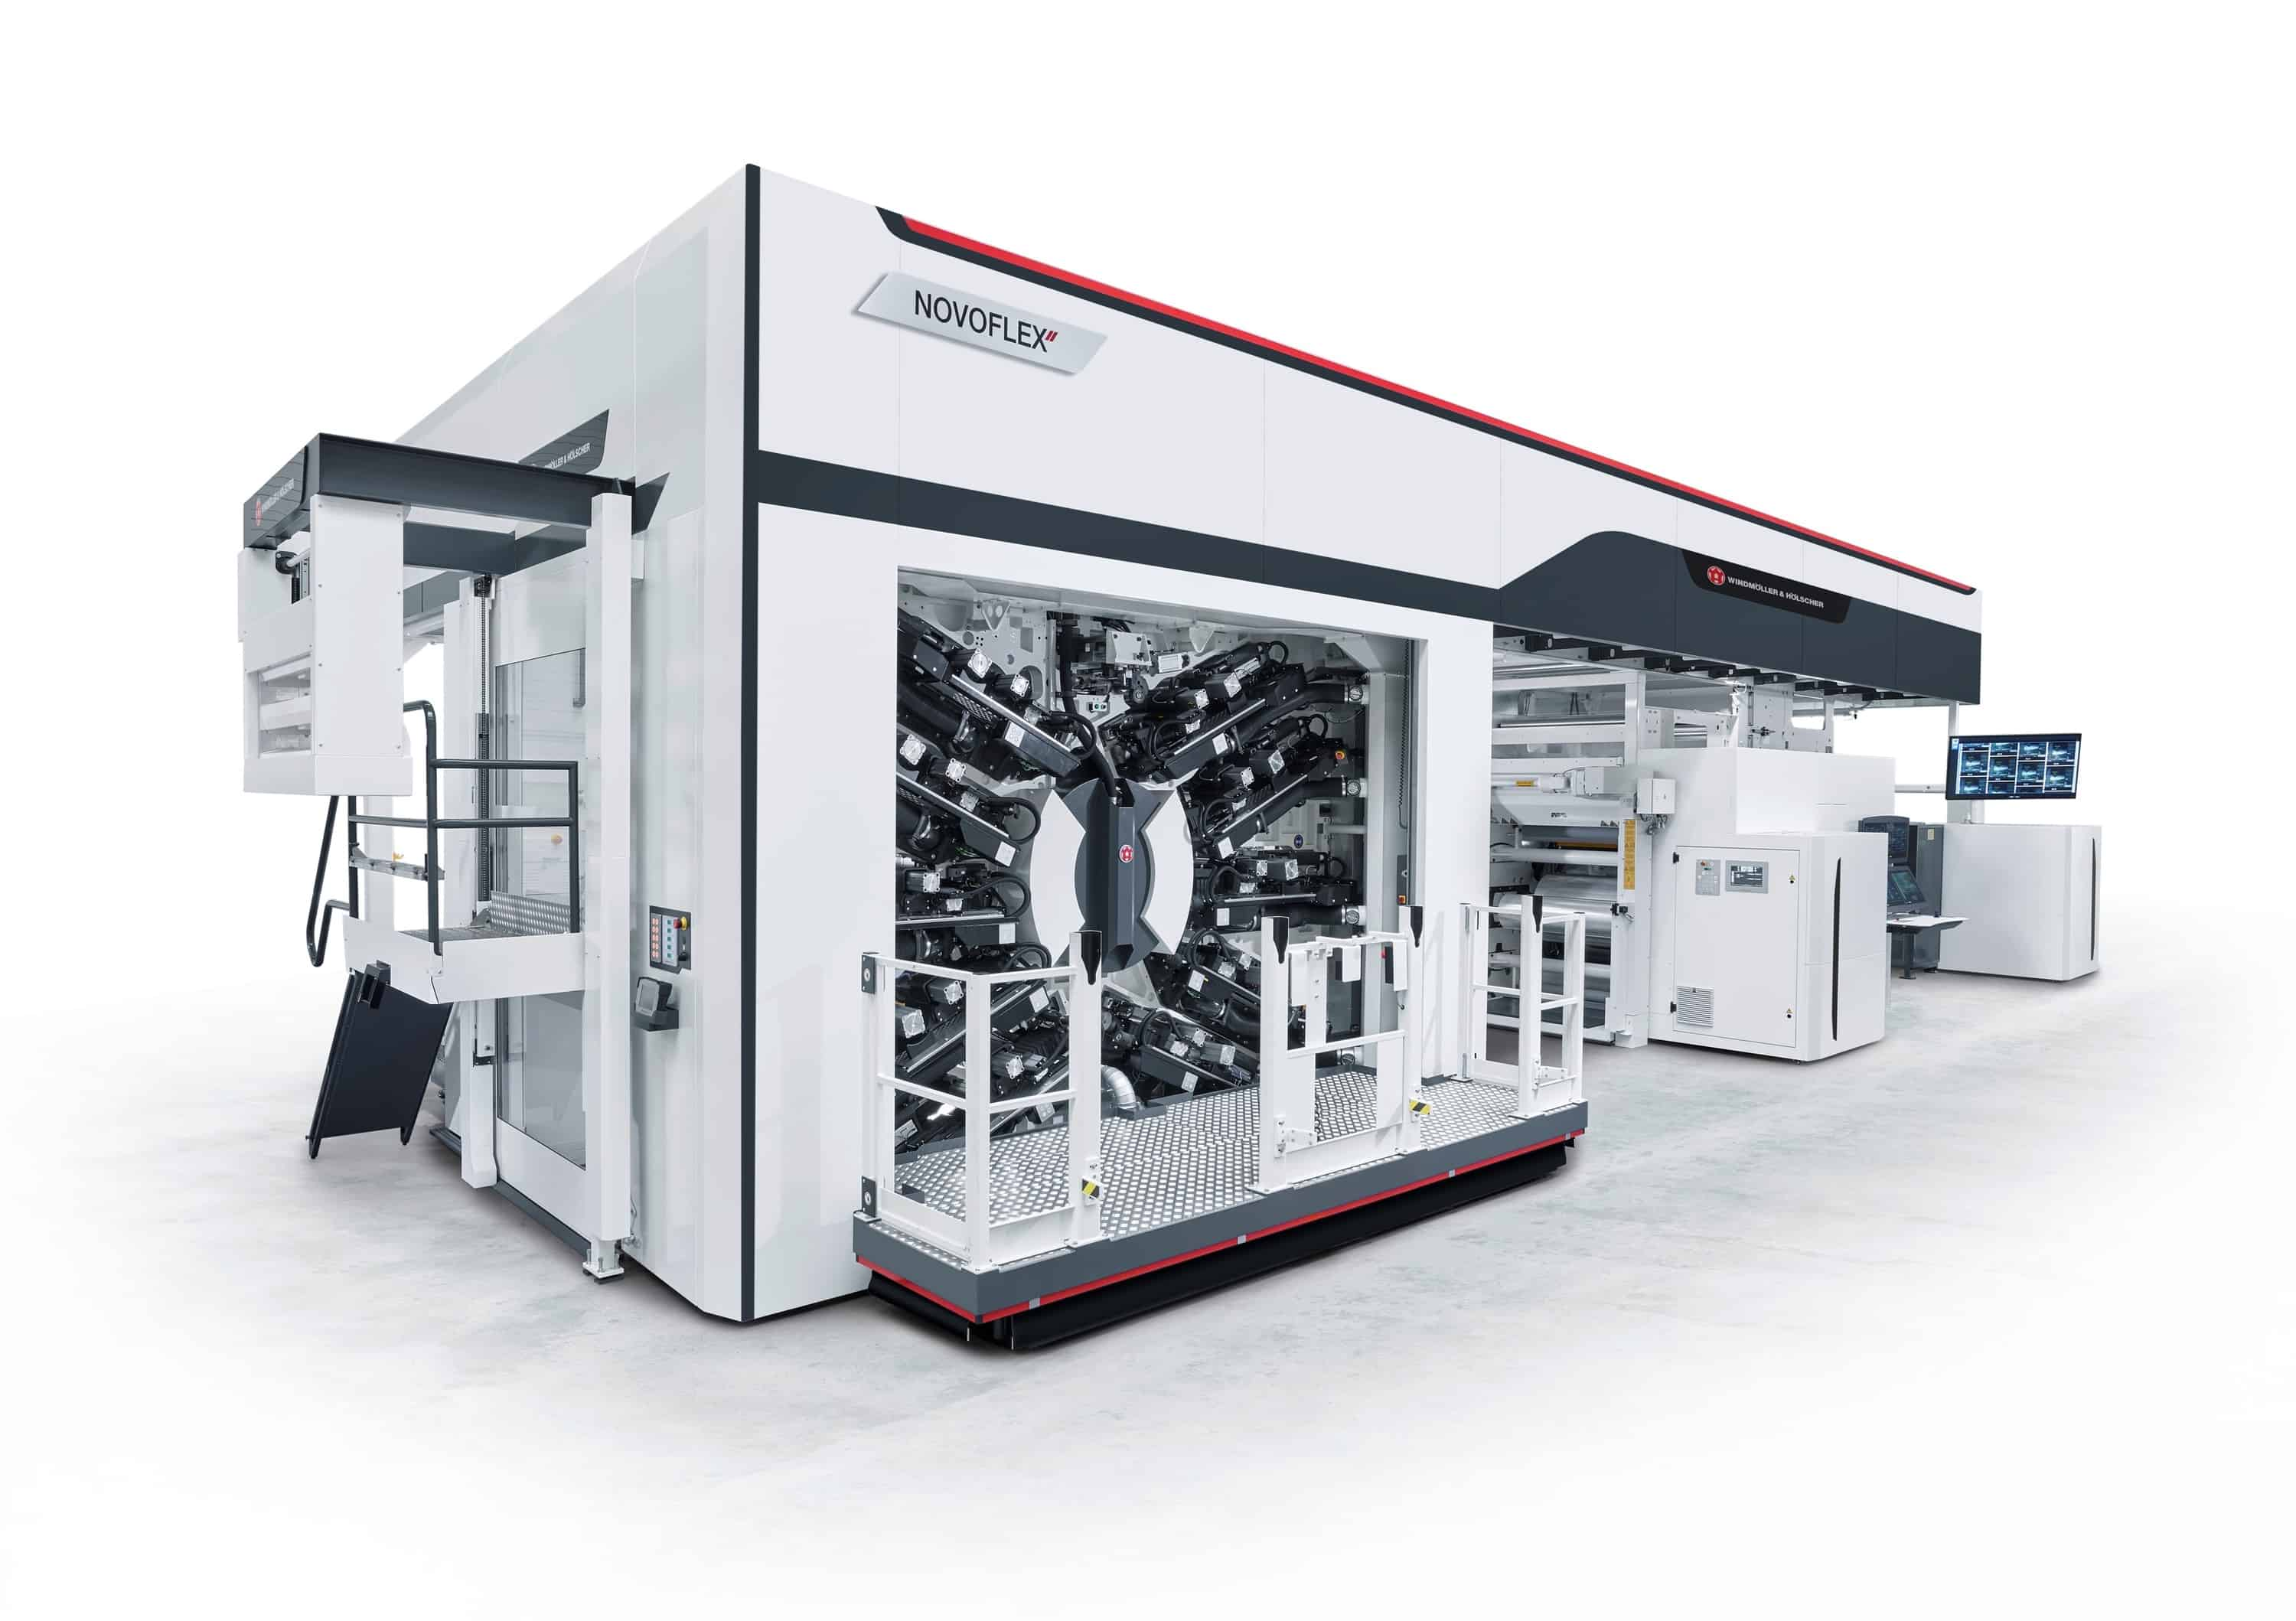 Optimizing flexographic, gravure and corrugated printing applications through inline viscosity monitoring and control